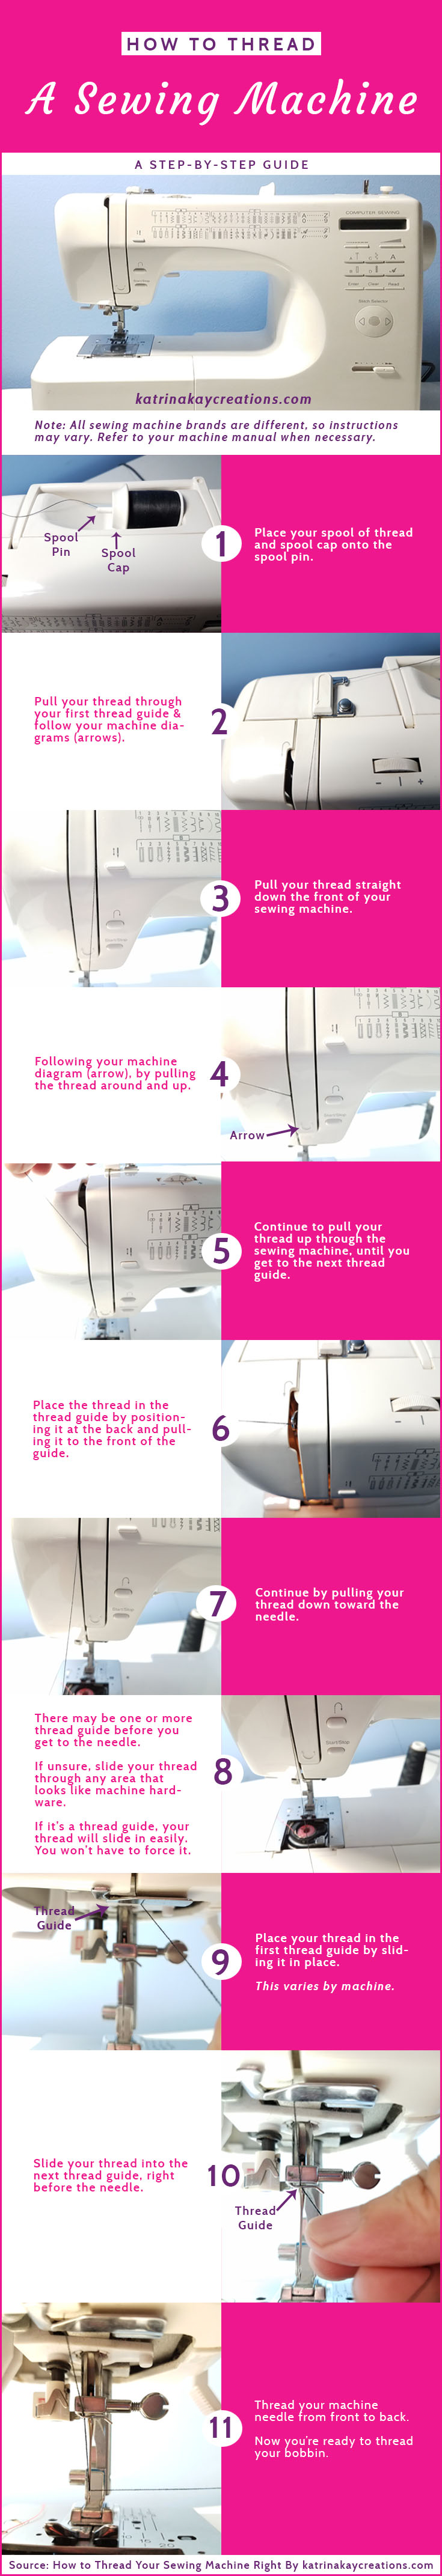 2 Guides That Will Help You Thread Your Sewing Machine Right Sewusa Threading Diagrams How To Wind A Bobbin